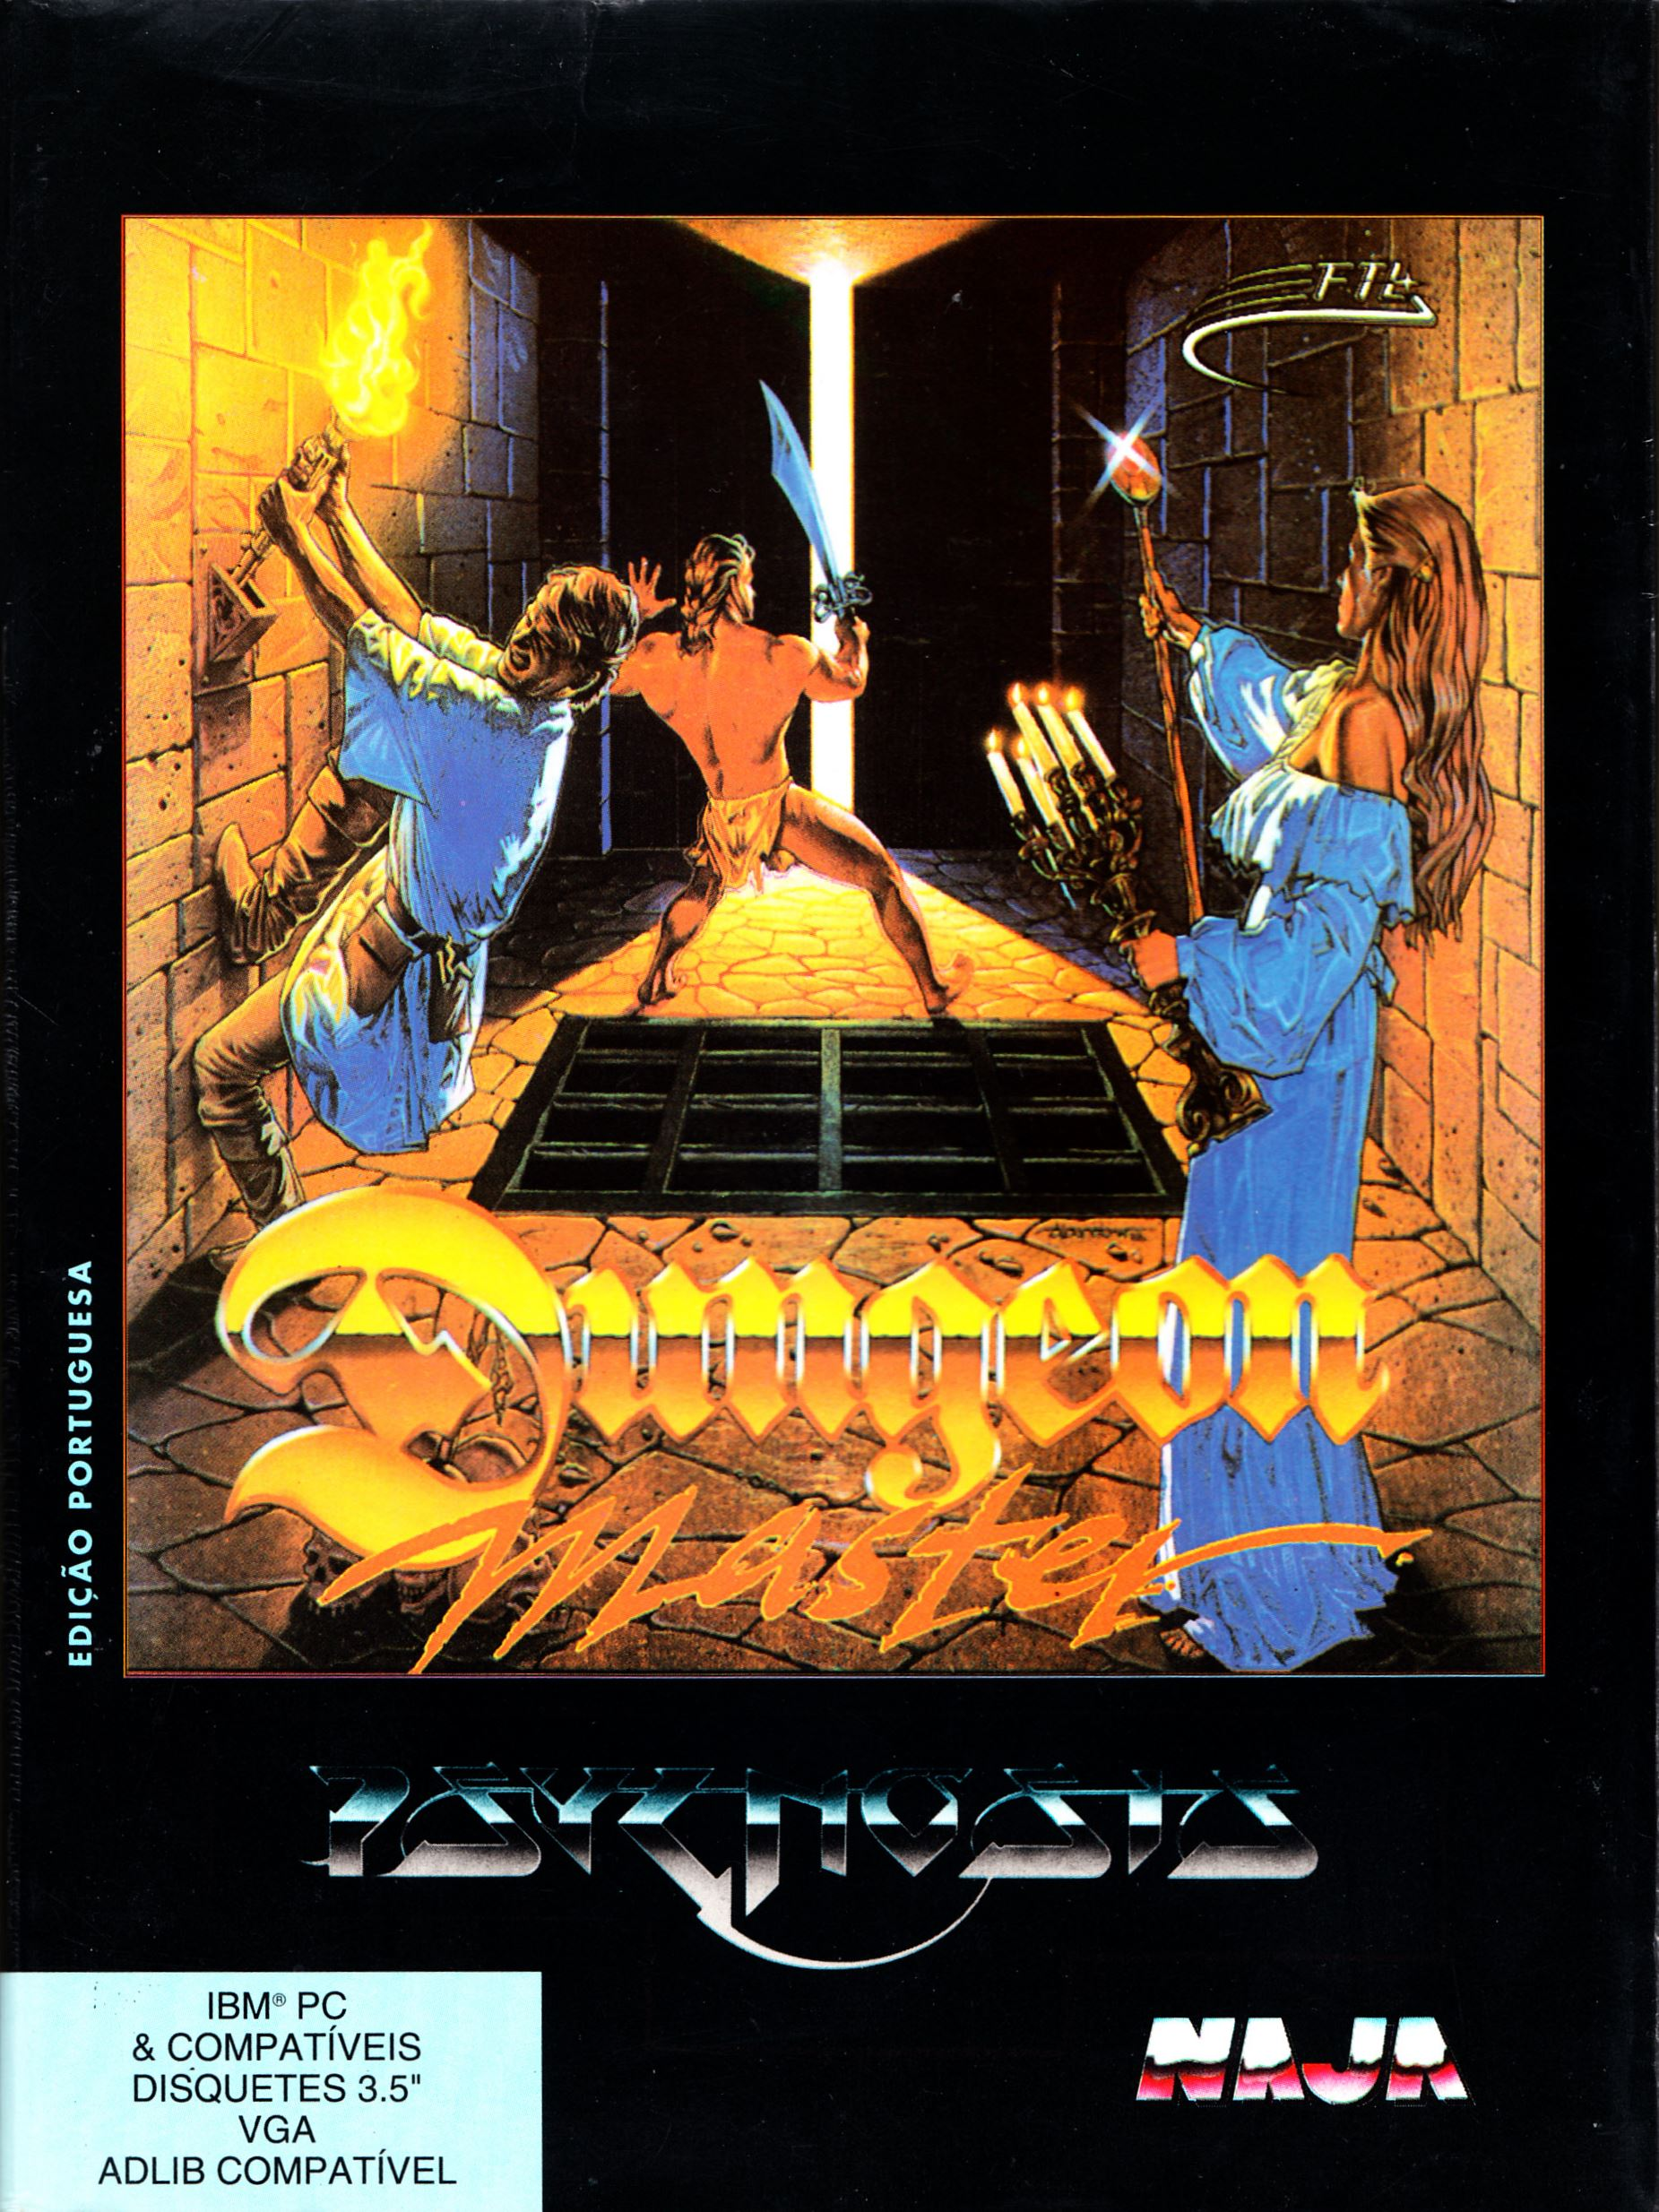 Game - Dungeon Master - PT - PC - Psygnosis - Box - Front - Scan